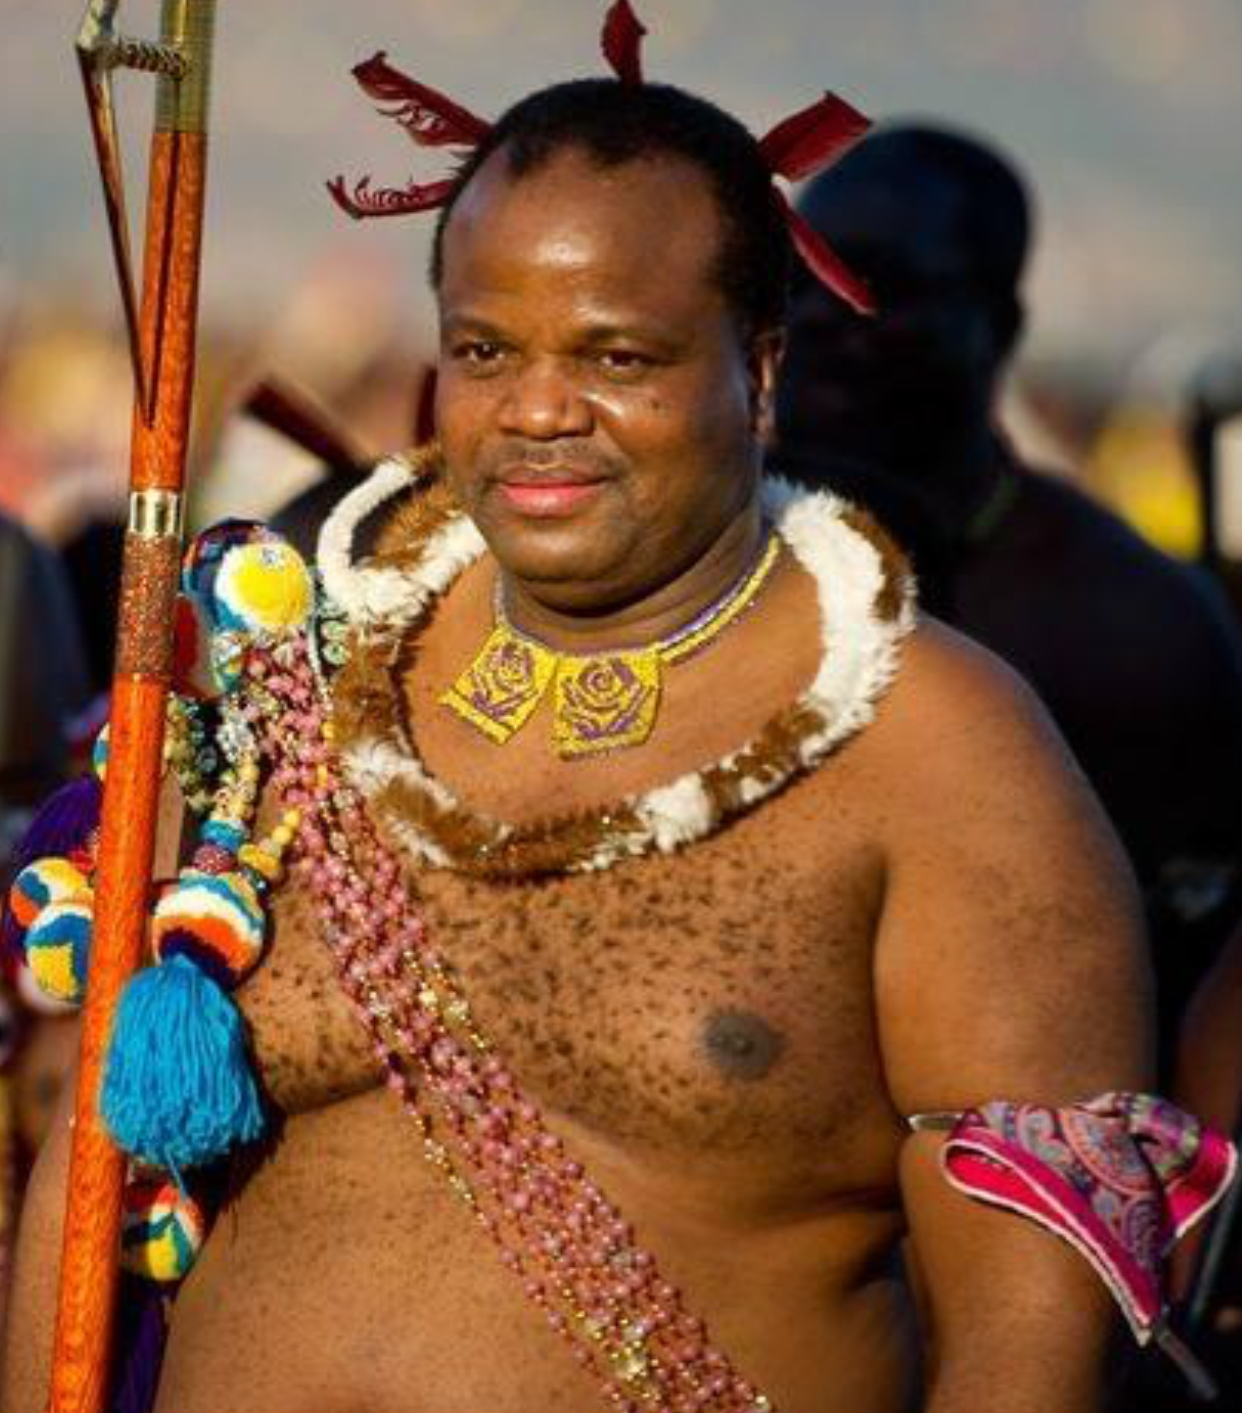 Mswati should be the last King to rule this country.